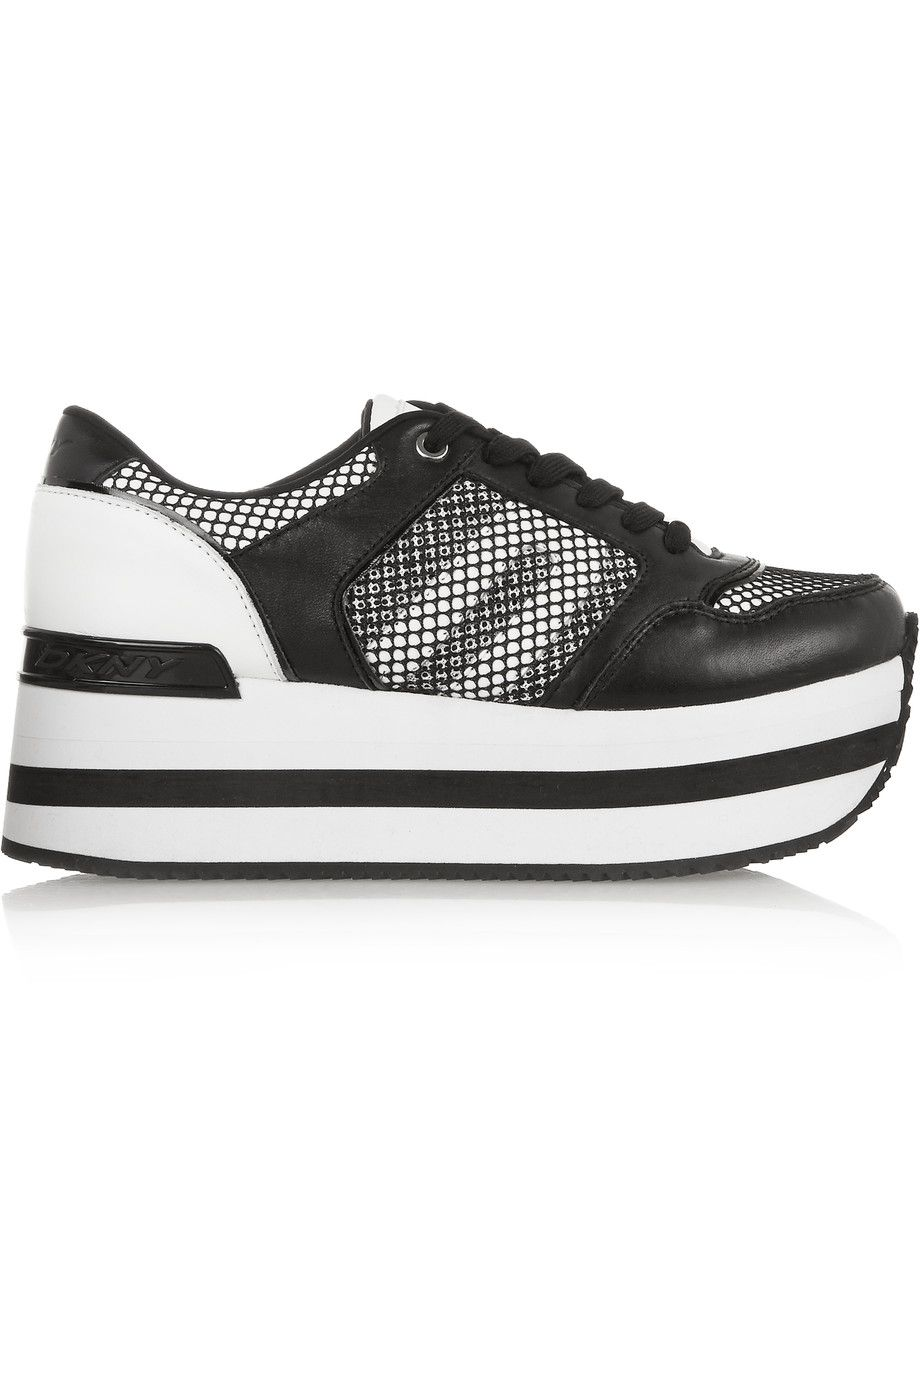 a1dcc2b3bbf DKNY Jill Leather And Mesh Platform Sneakers. #dkny #shoes #sneakers ...